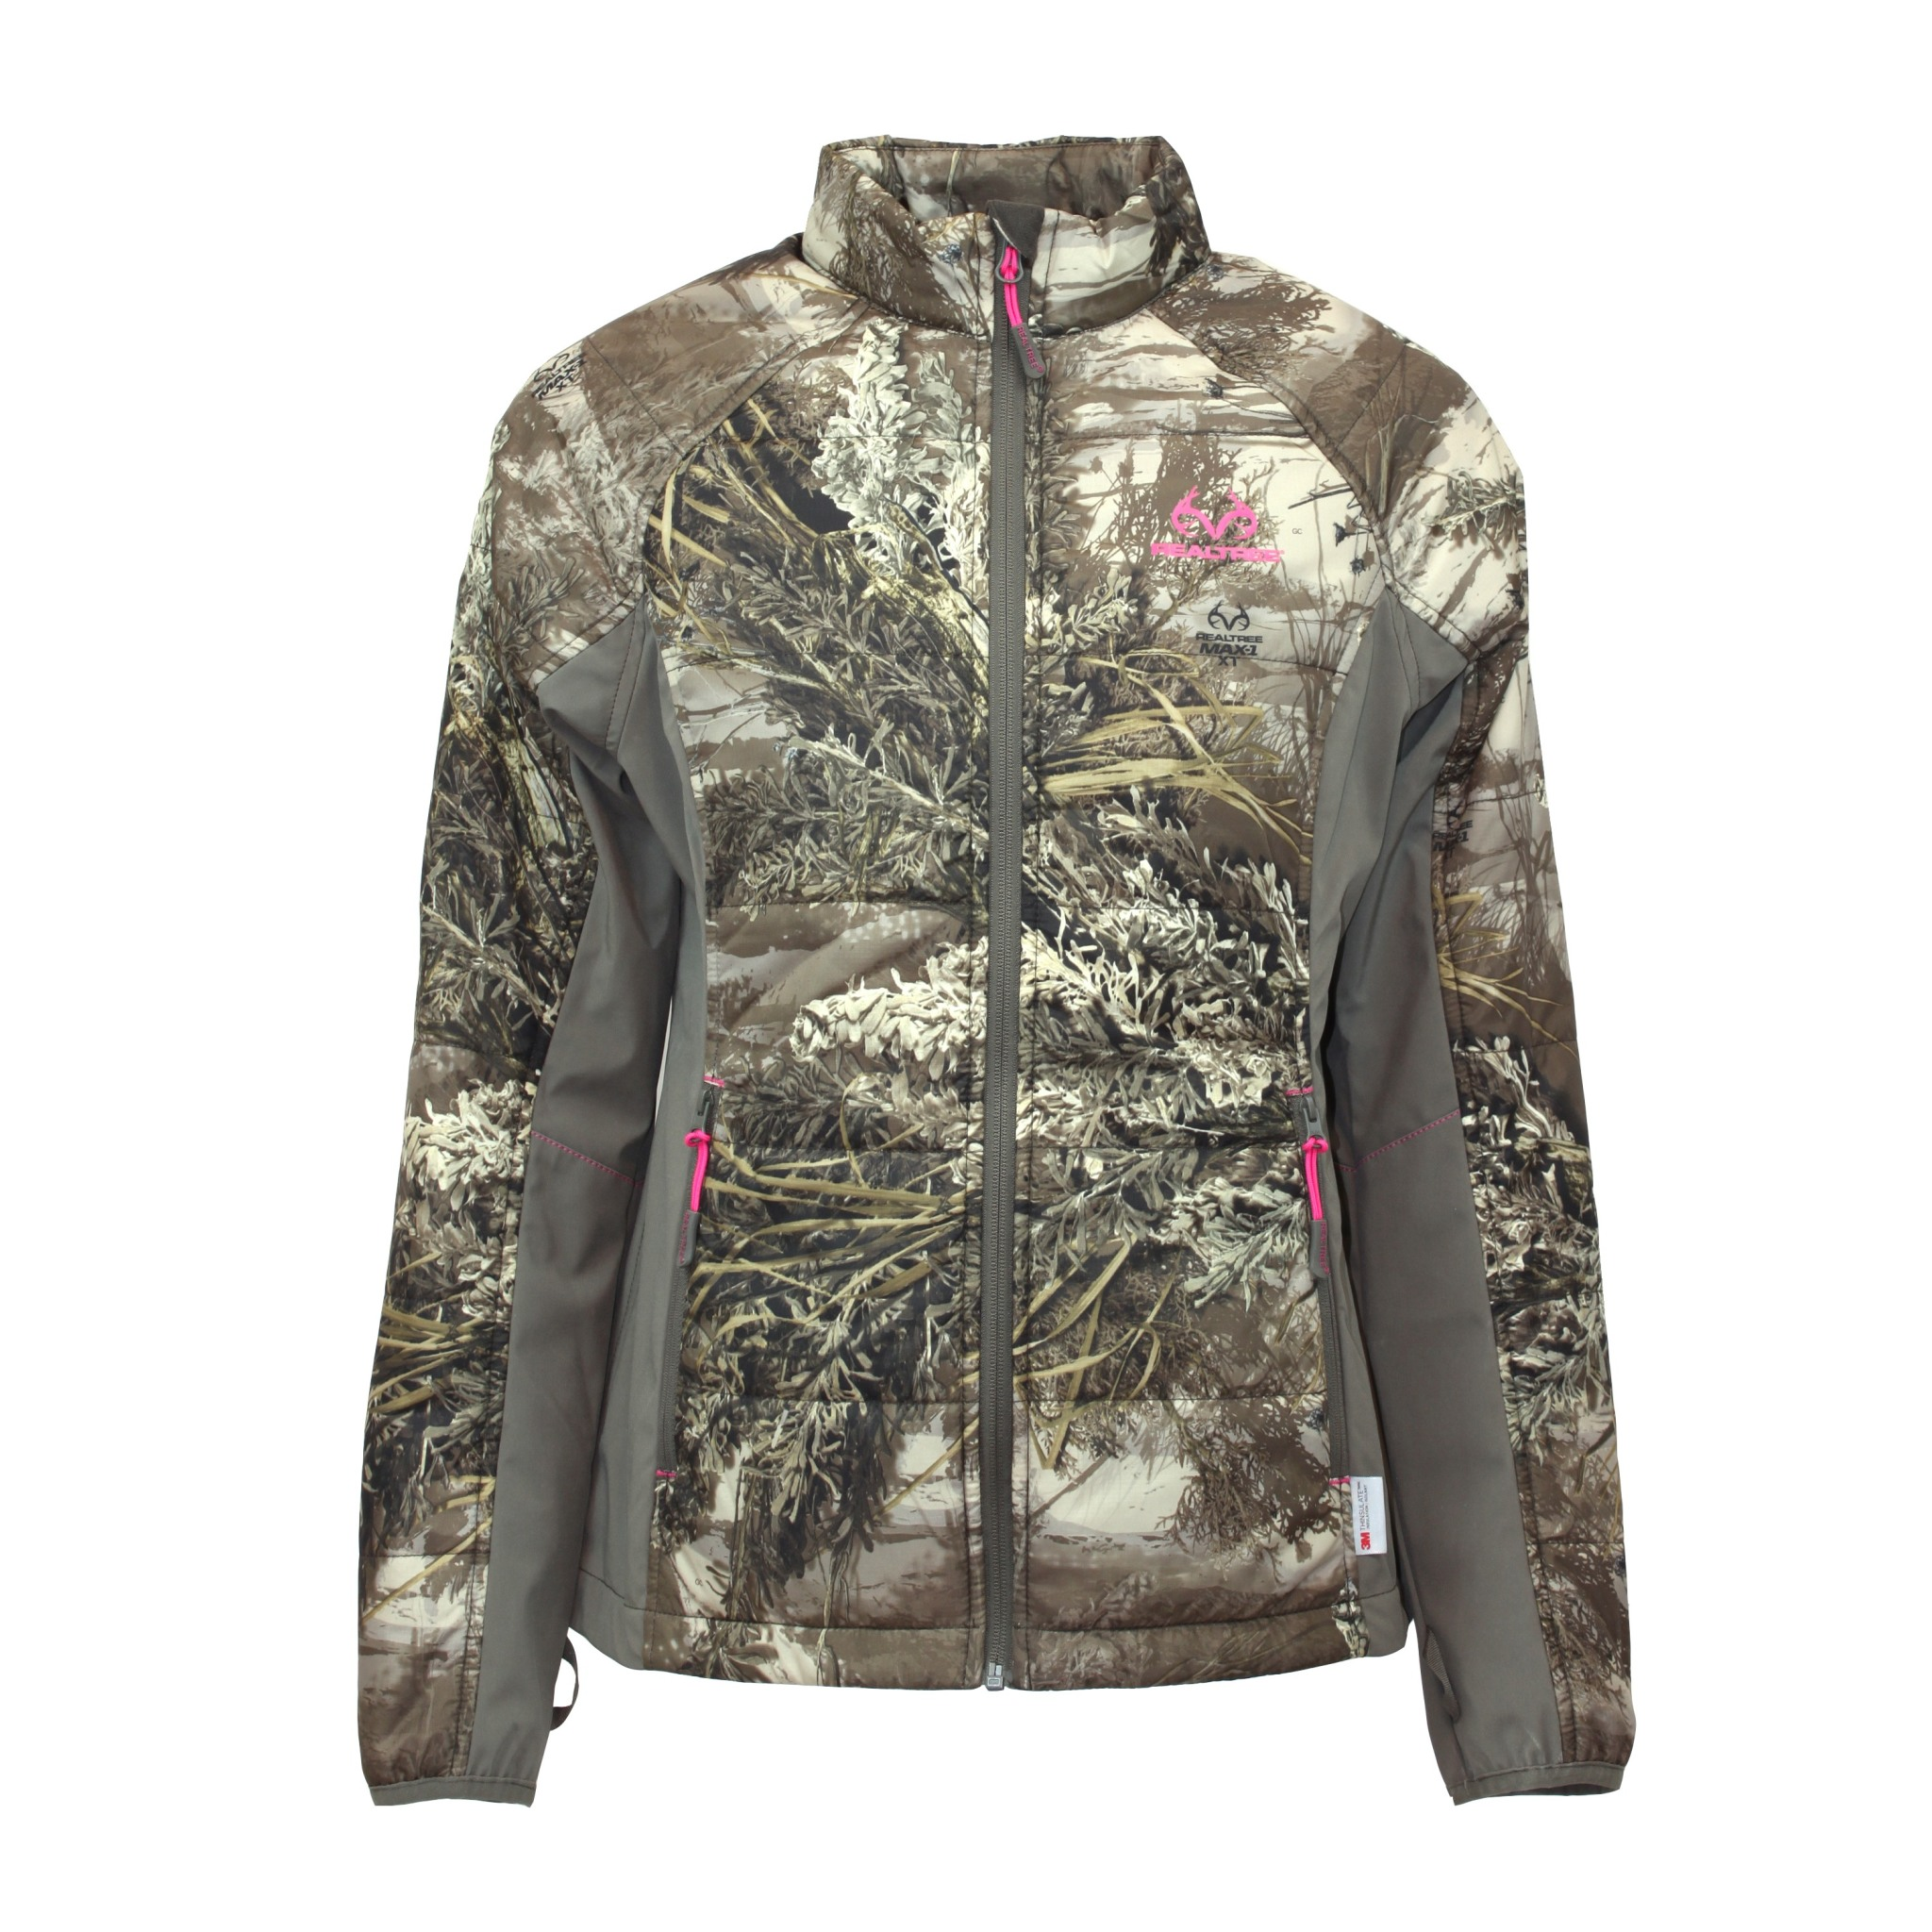 Realtree Women's Insulated Jacket